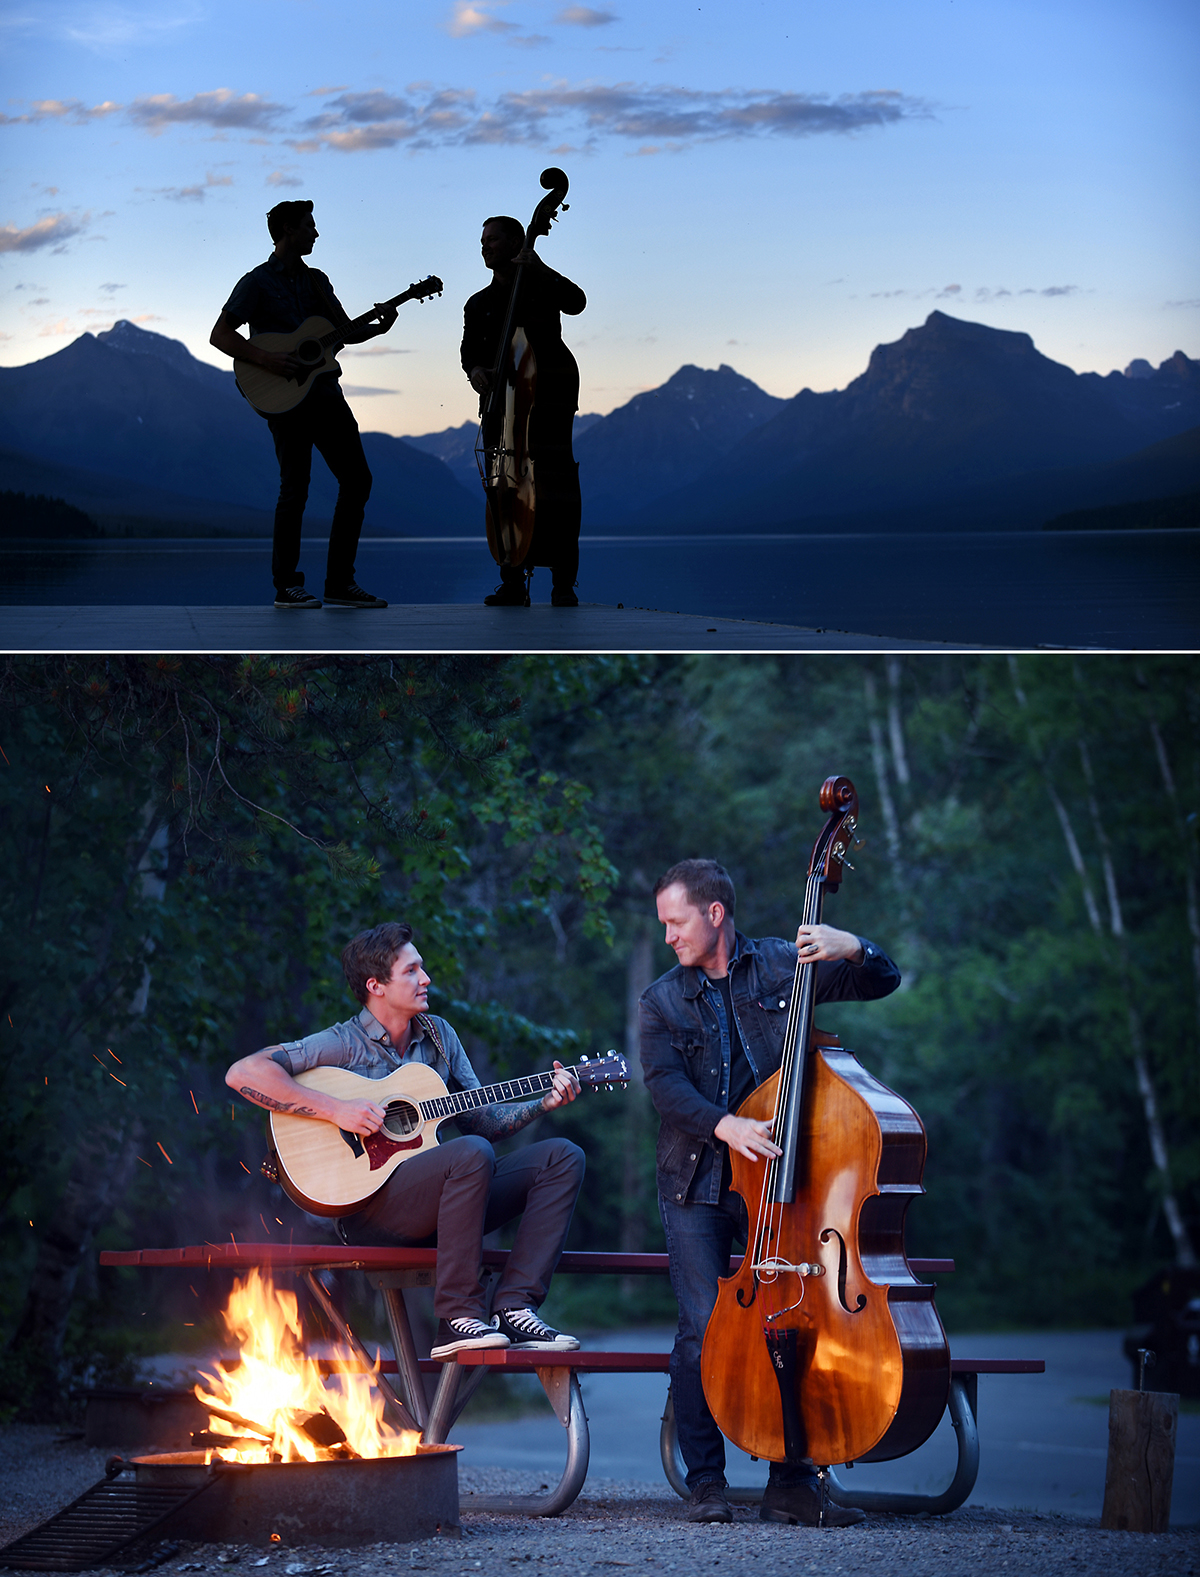 CJ Krager and his father Chris make music during a portrait session in Glacier National Park on Tuesday, June 16. CJ is a member of the Copper Mountain Band and Chris collaborates with a number of local musicians, but is most frequently seen with the Left Ready and with Mike Murray in the Mike Murray Duo. (Brenda Ahearn/Daily Inter Lake)